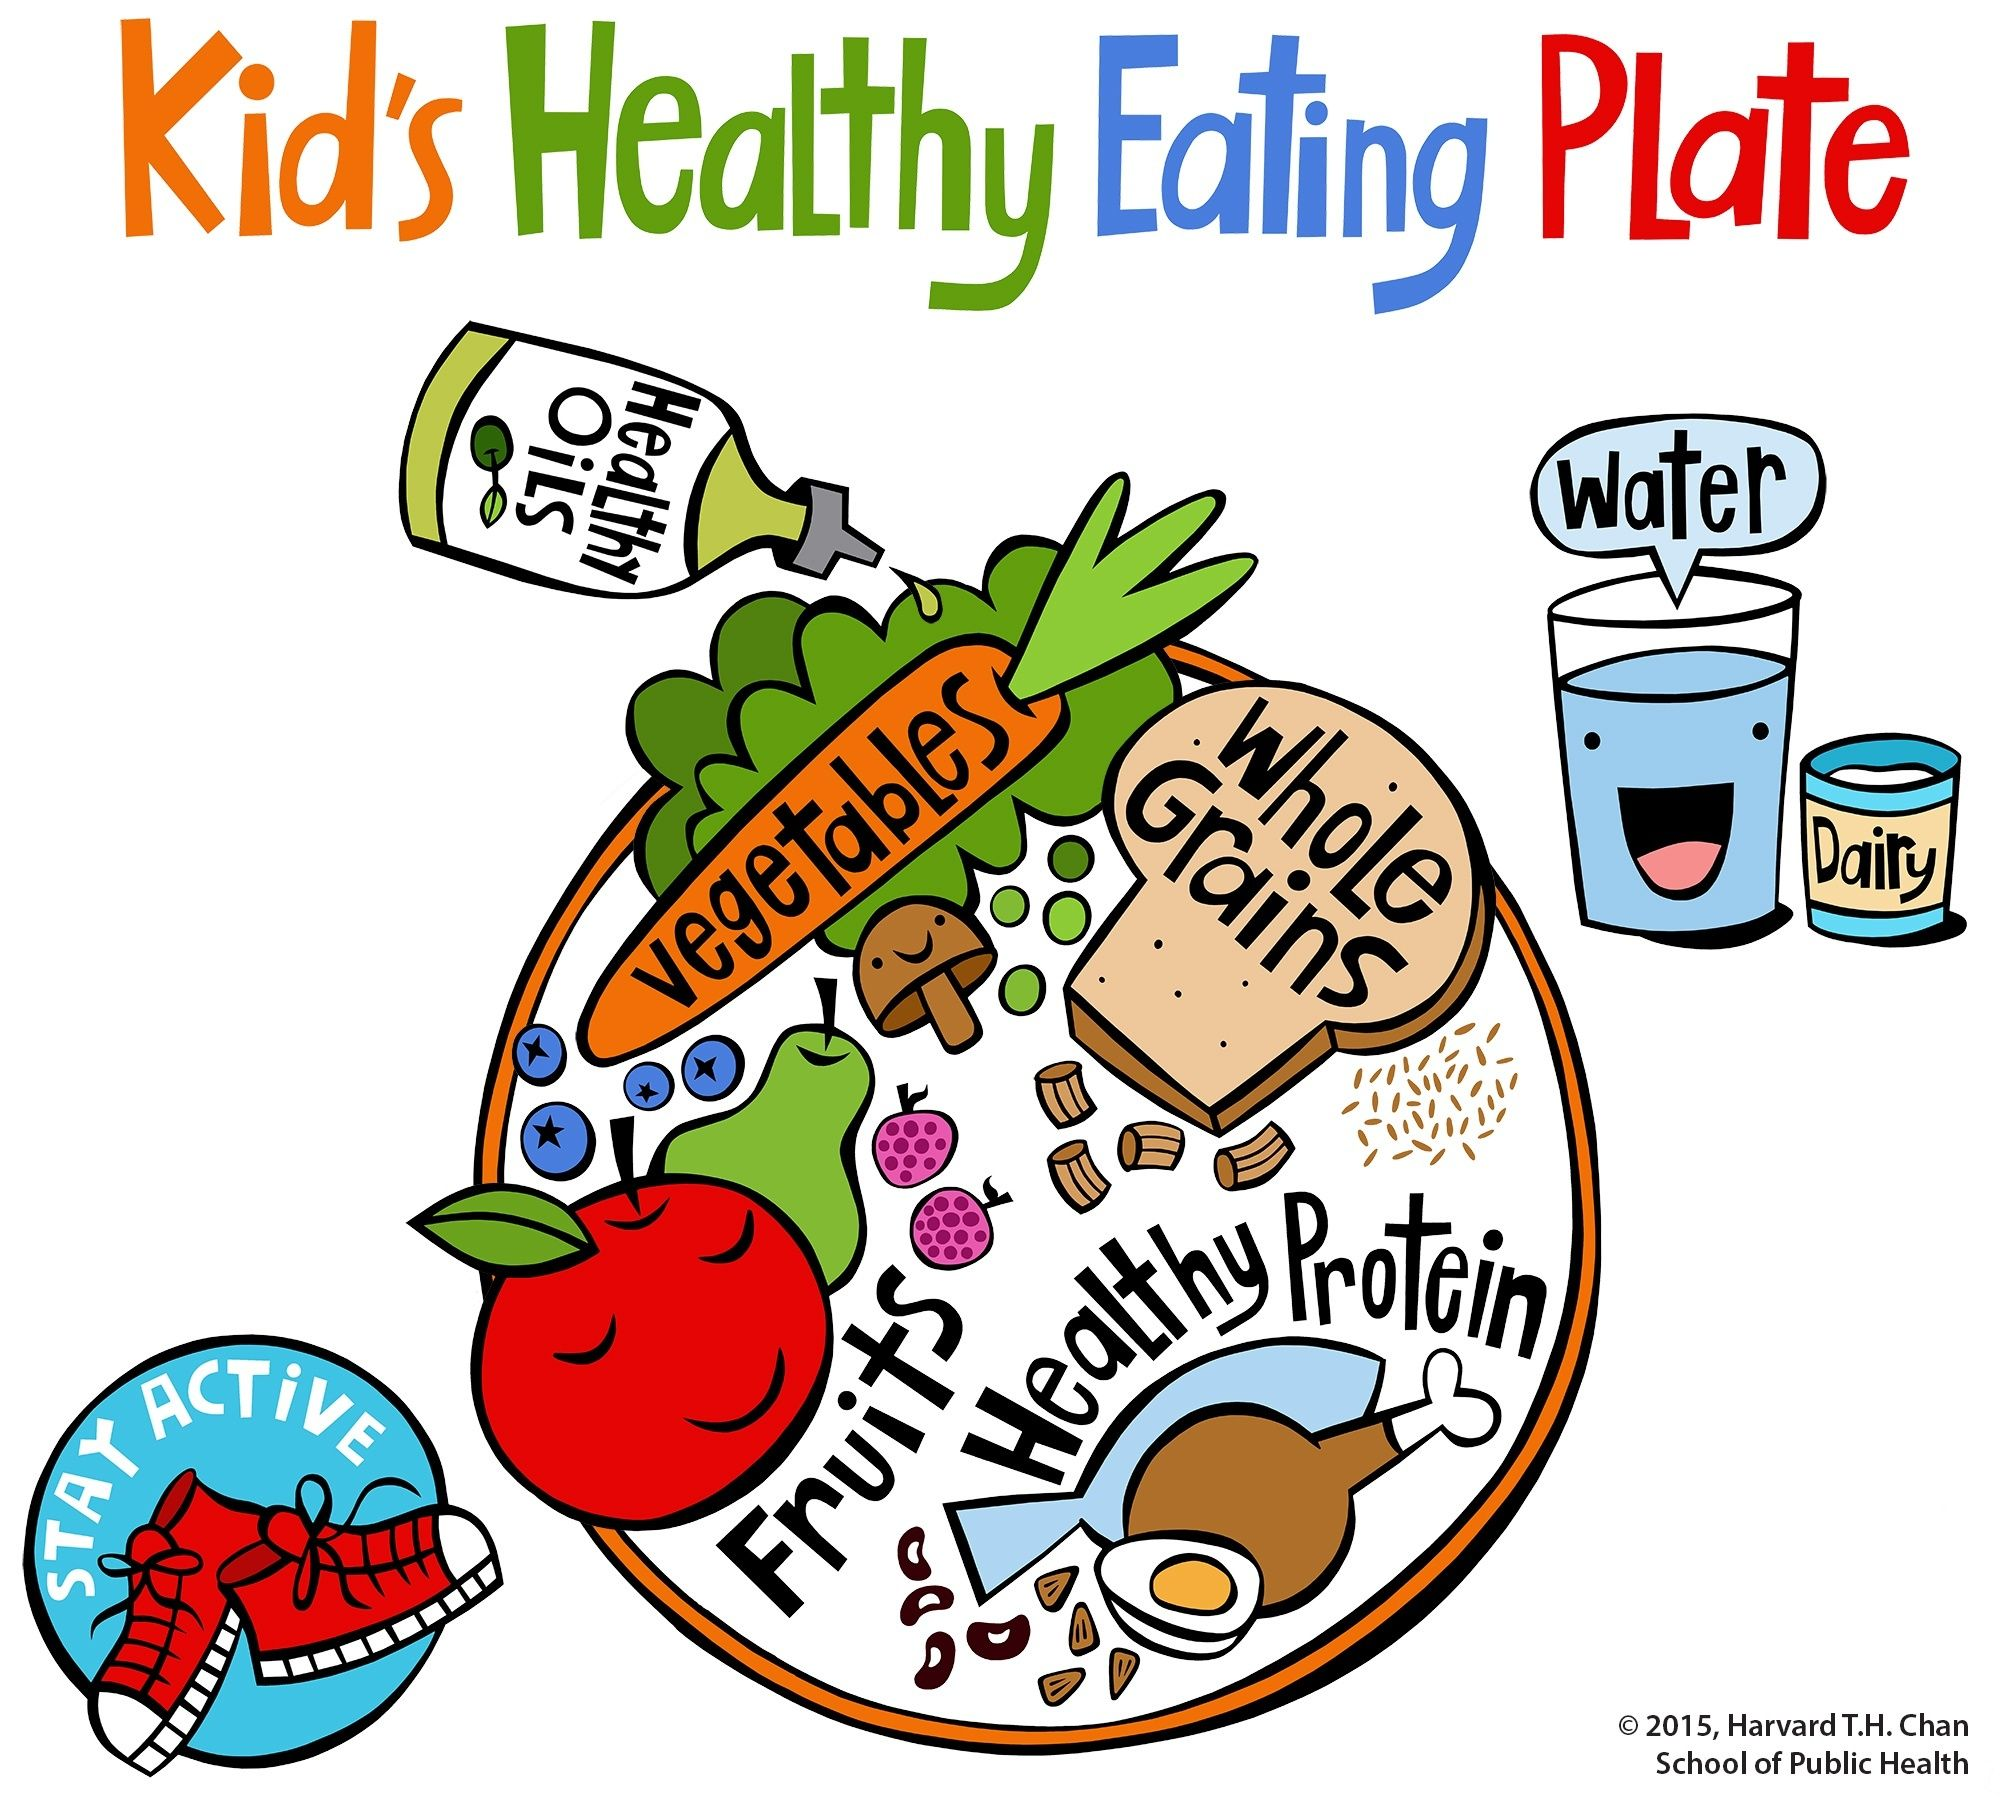 The Kids Healthy Eating Plate Is A Visual Guide To Help Educate And Encourage Children Eat Well Keep Moving